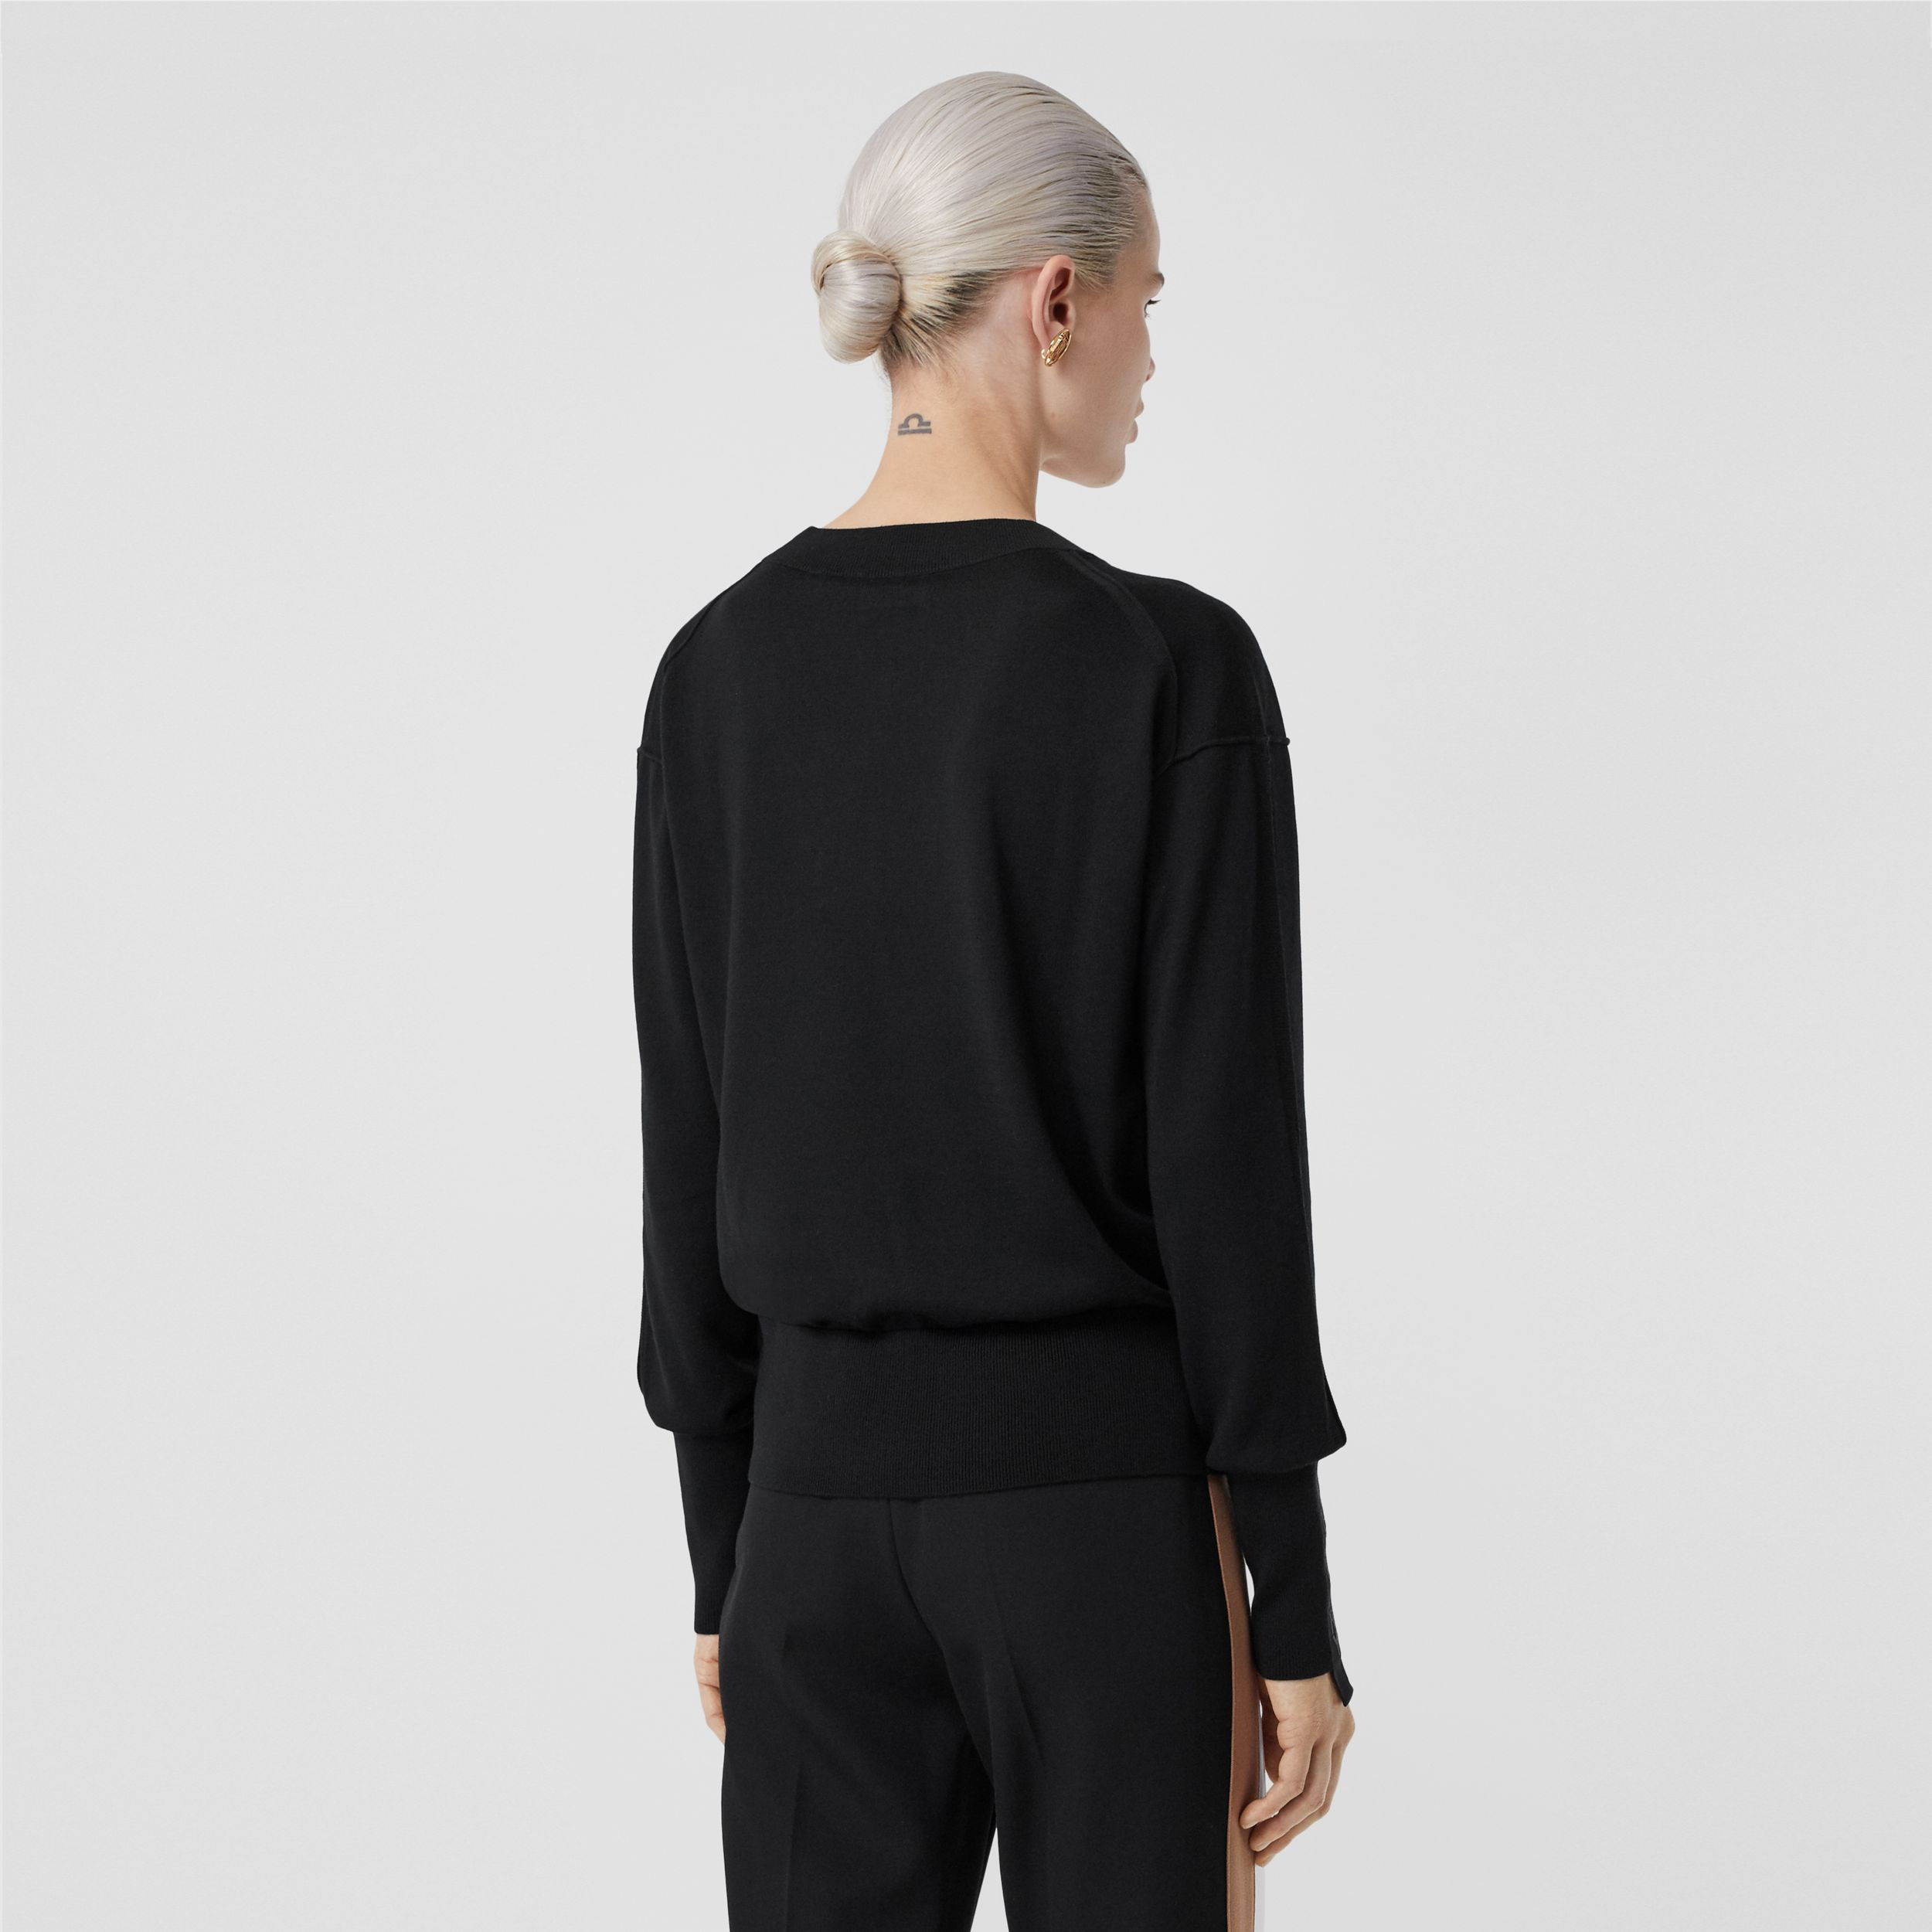 Logo Detail Merino Wool Silk Sweater in Black - Women | Burberry - 3